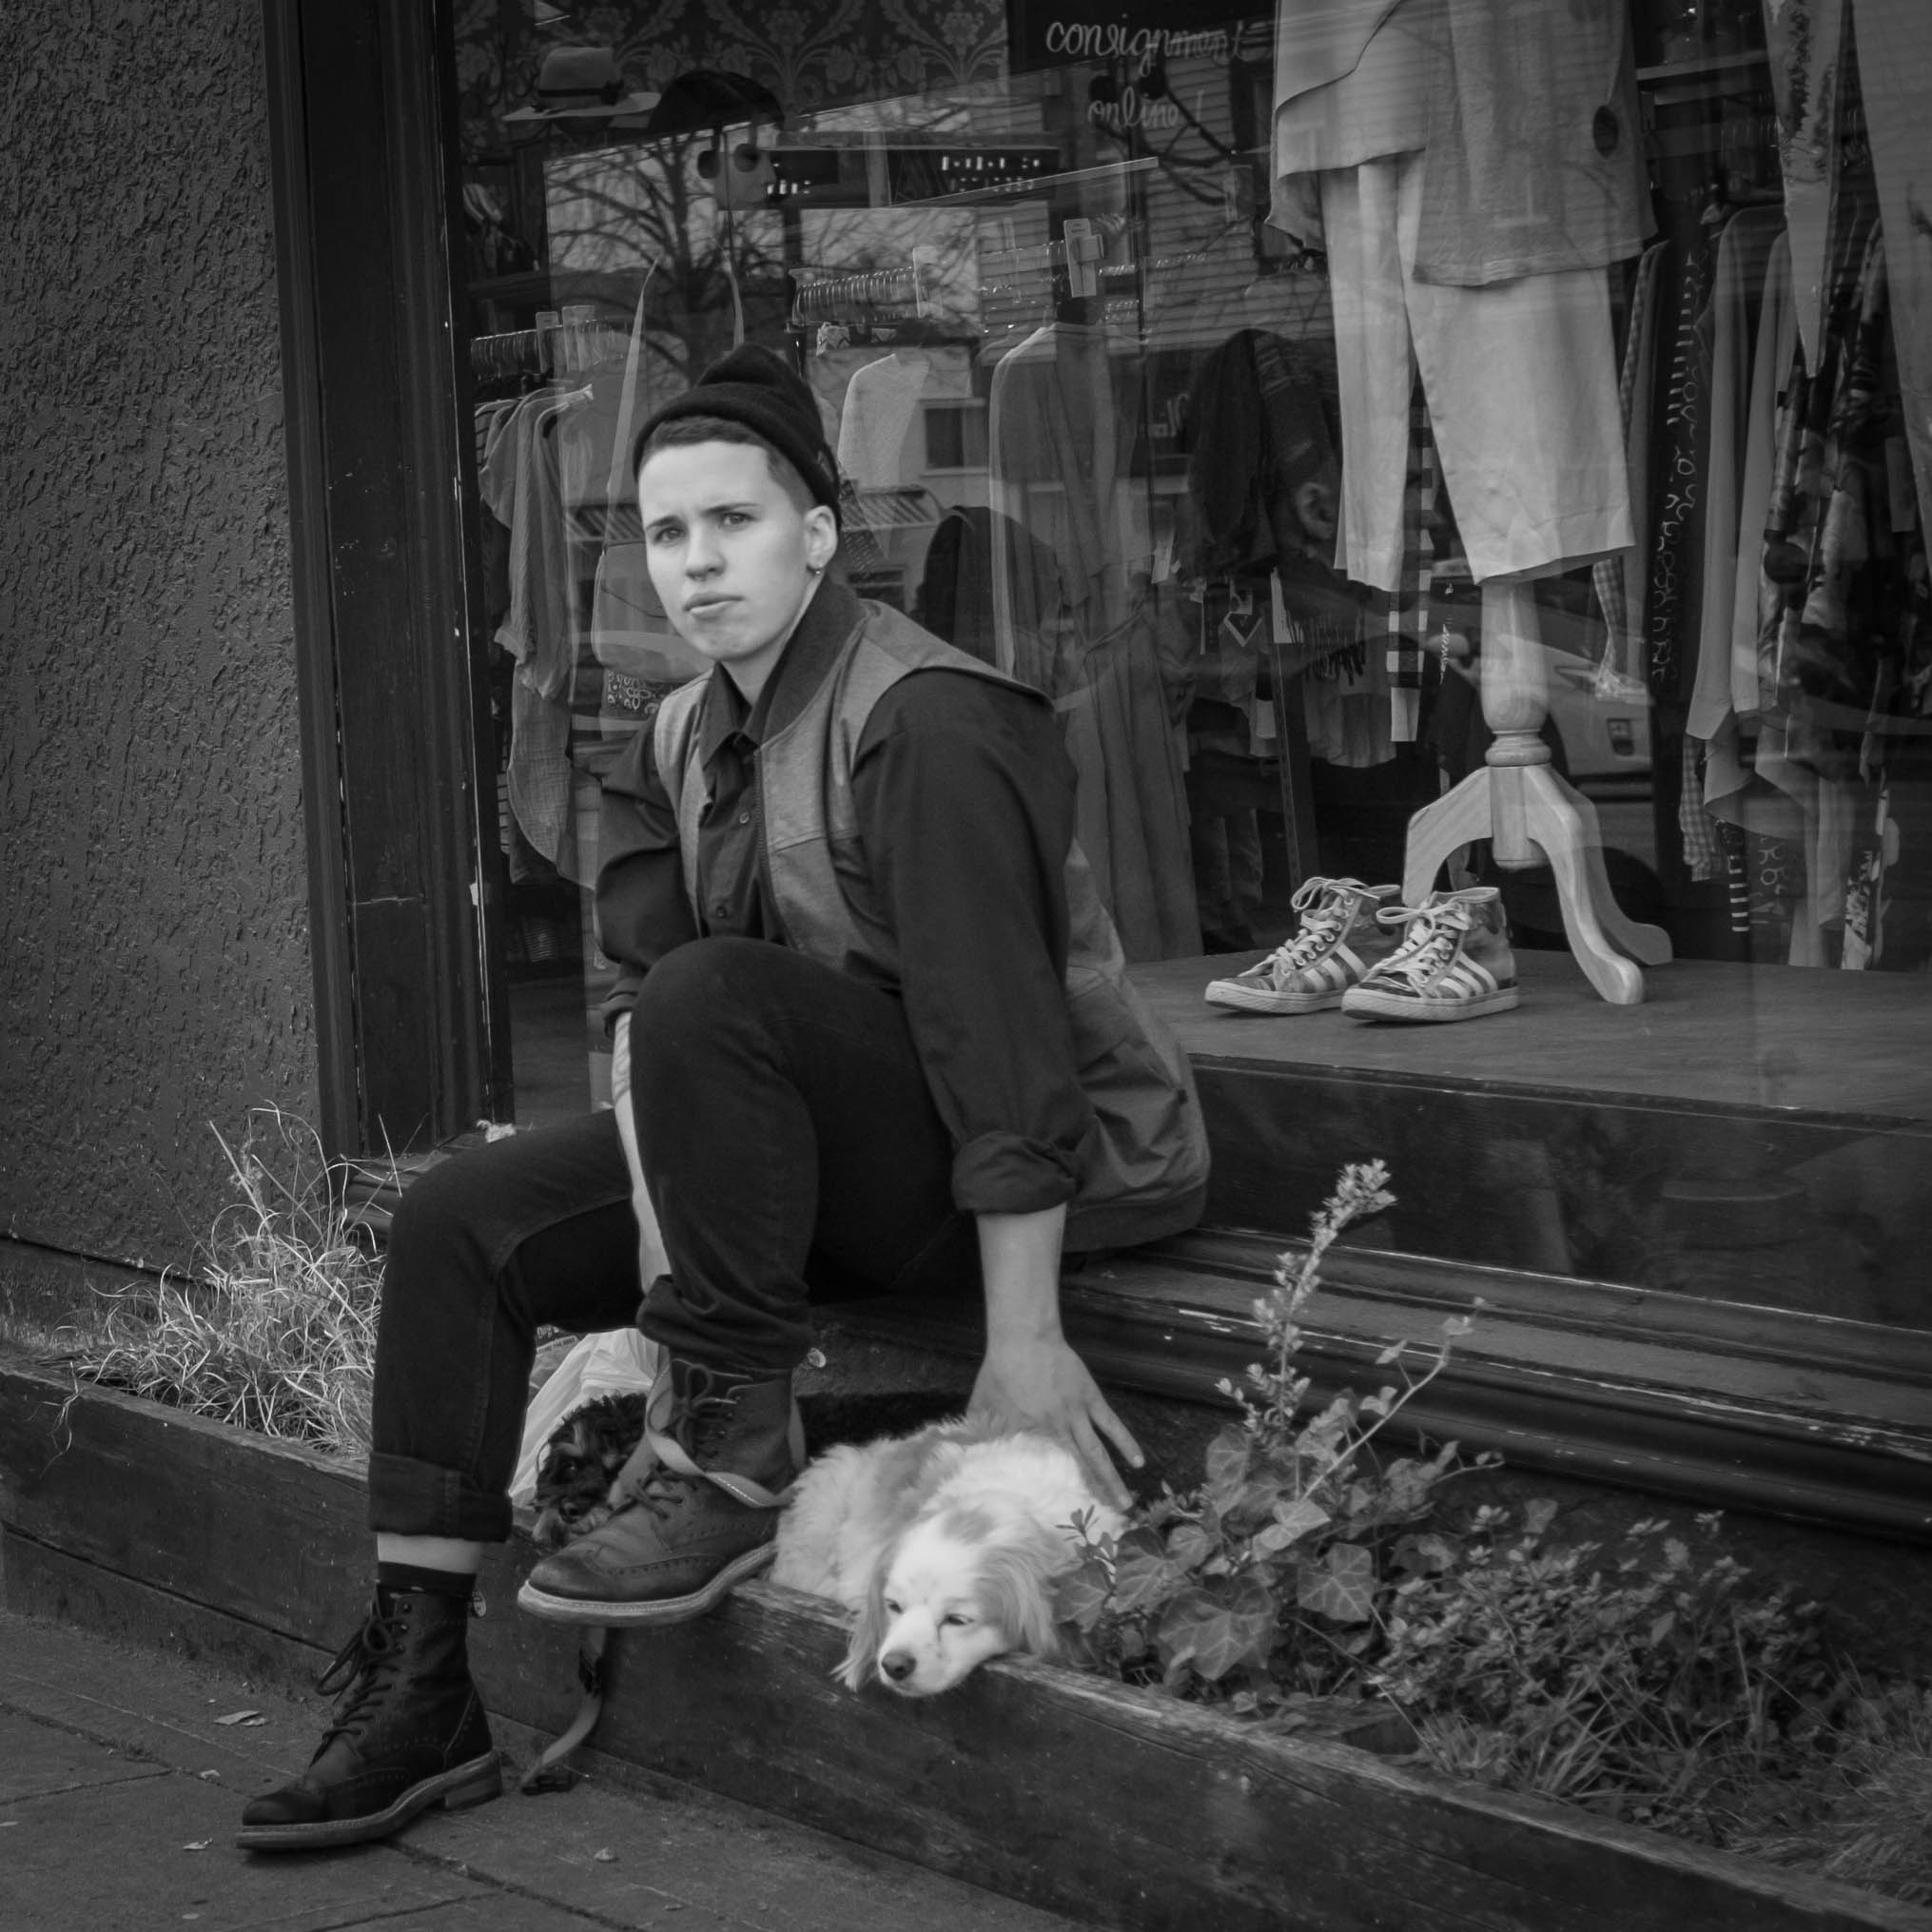 Hipster with dog Main St., Vancouver Fuji X100T 3.16